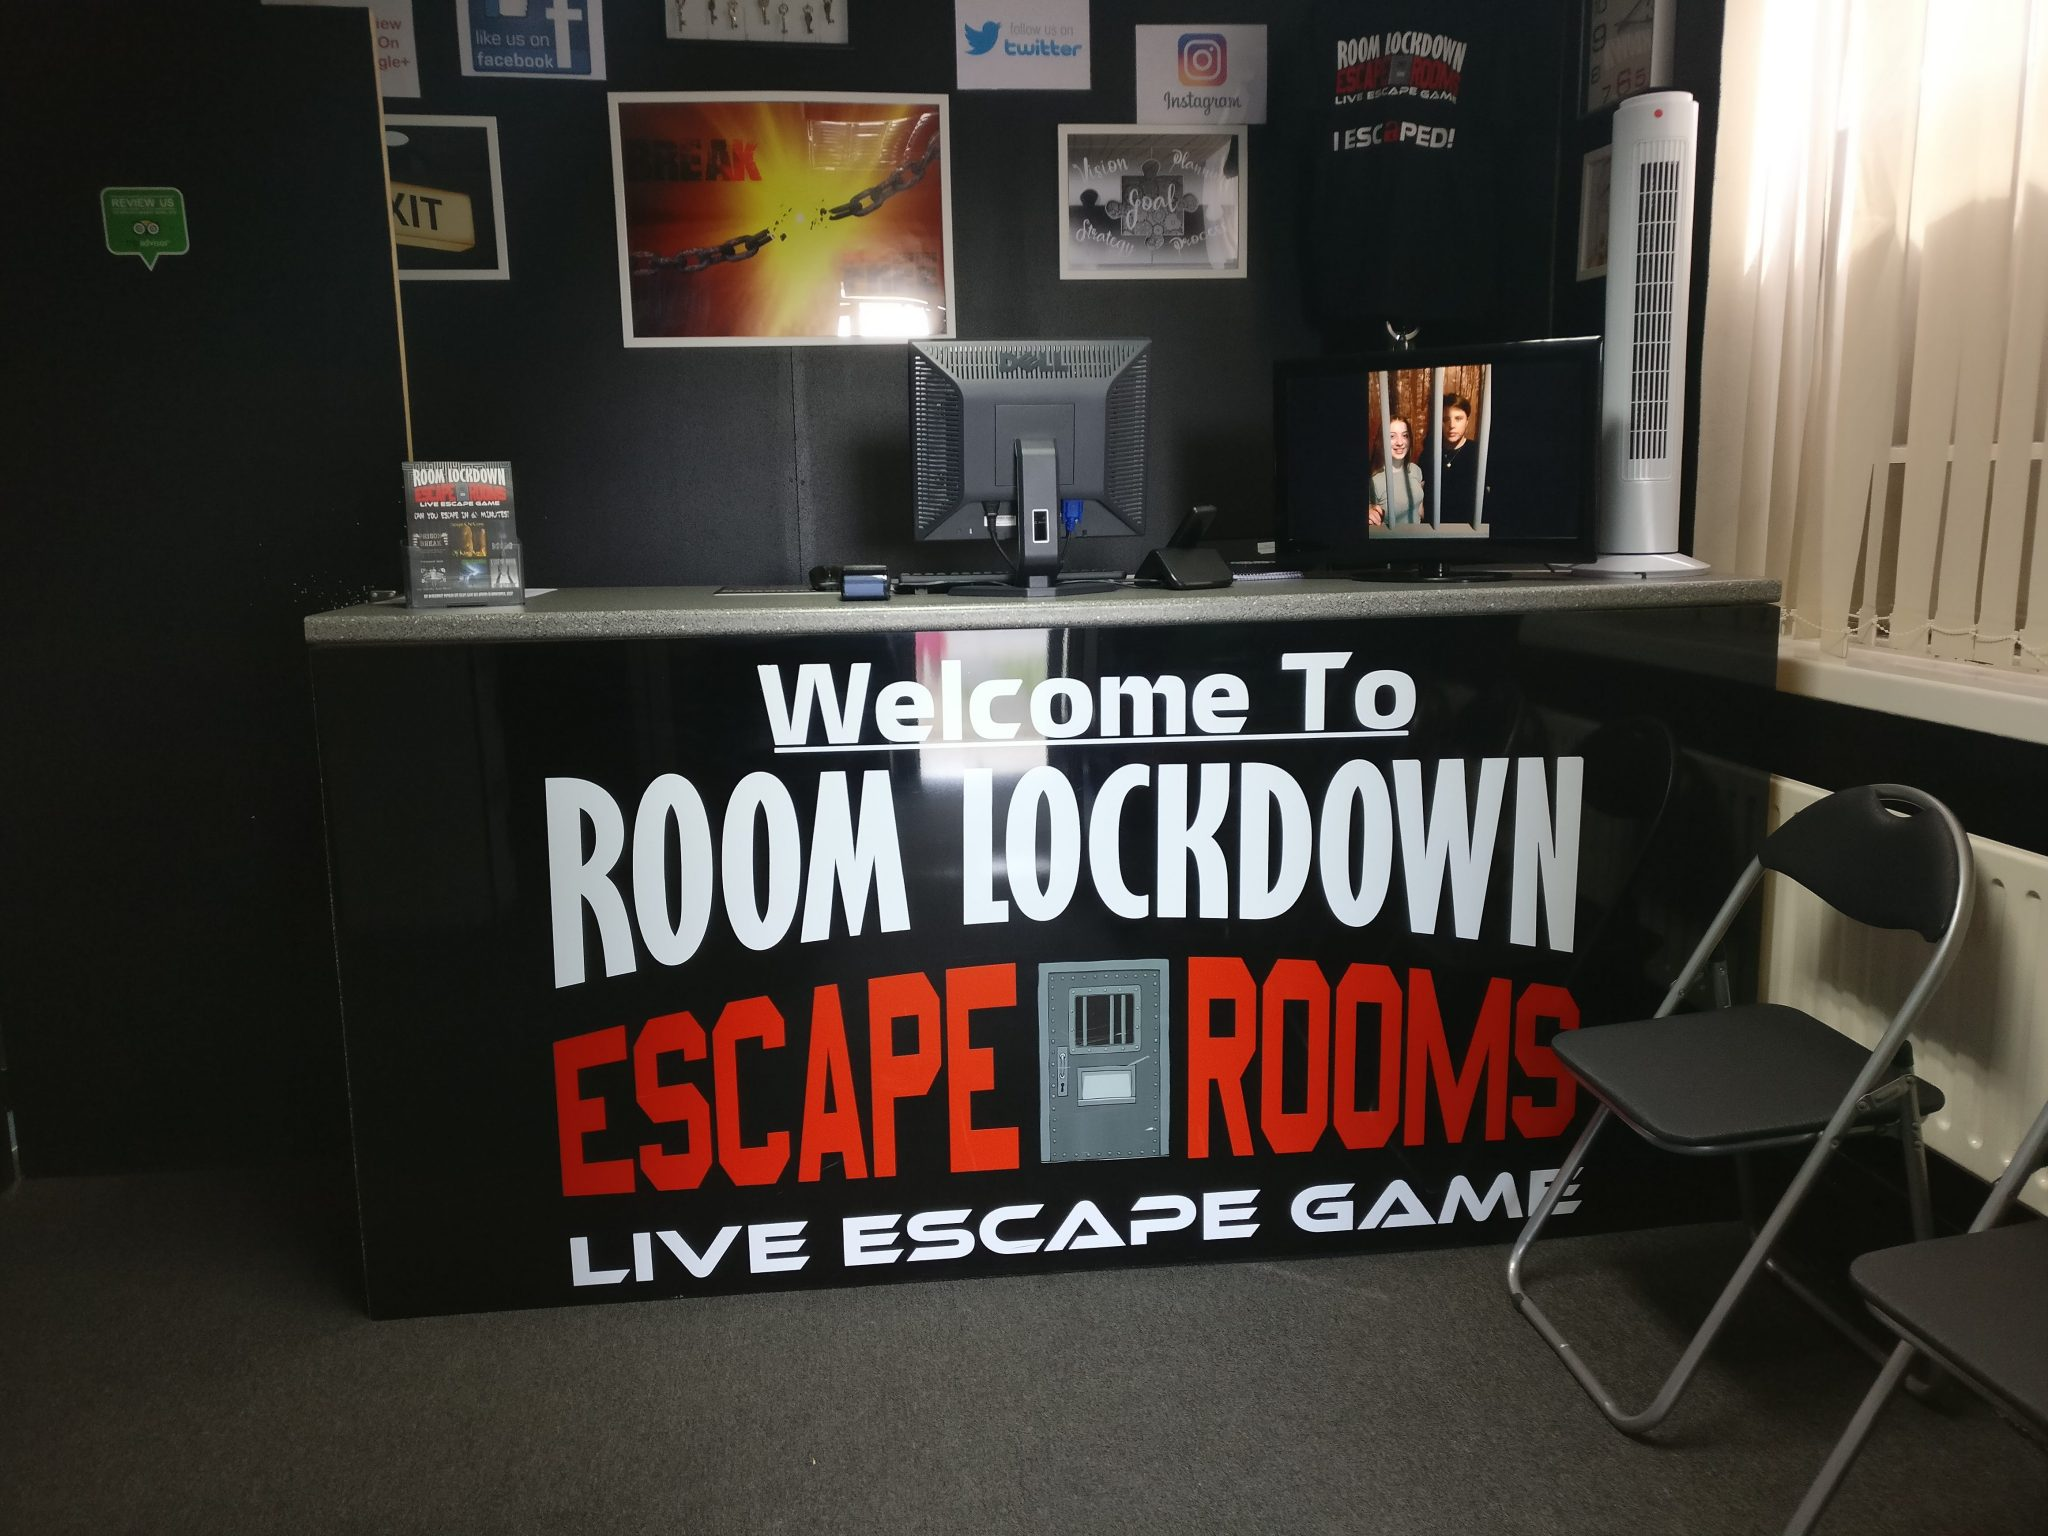 The lobby area of Room Lockdown